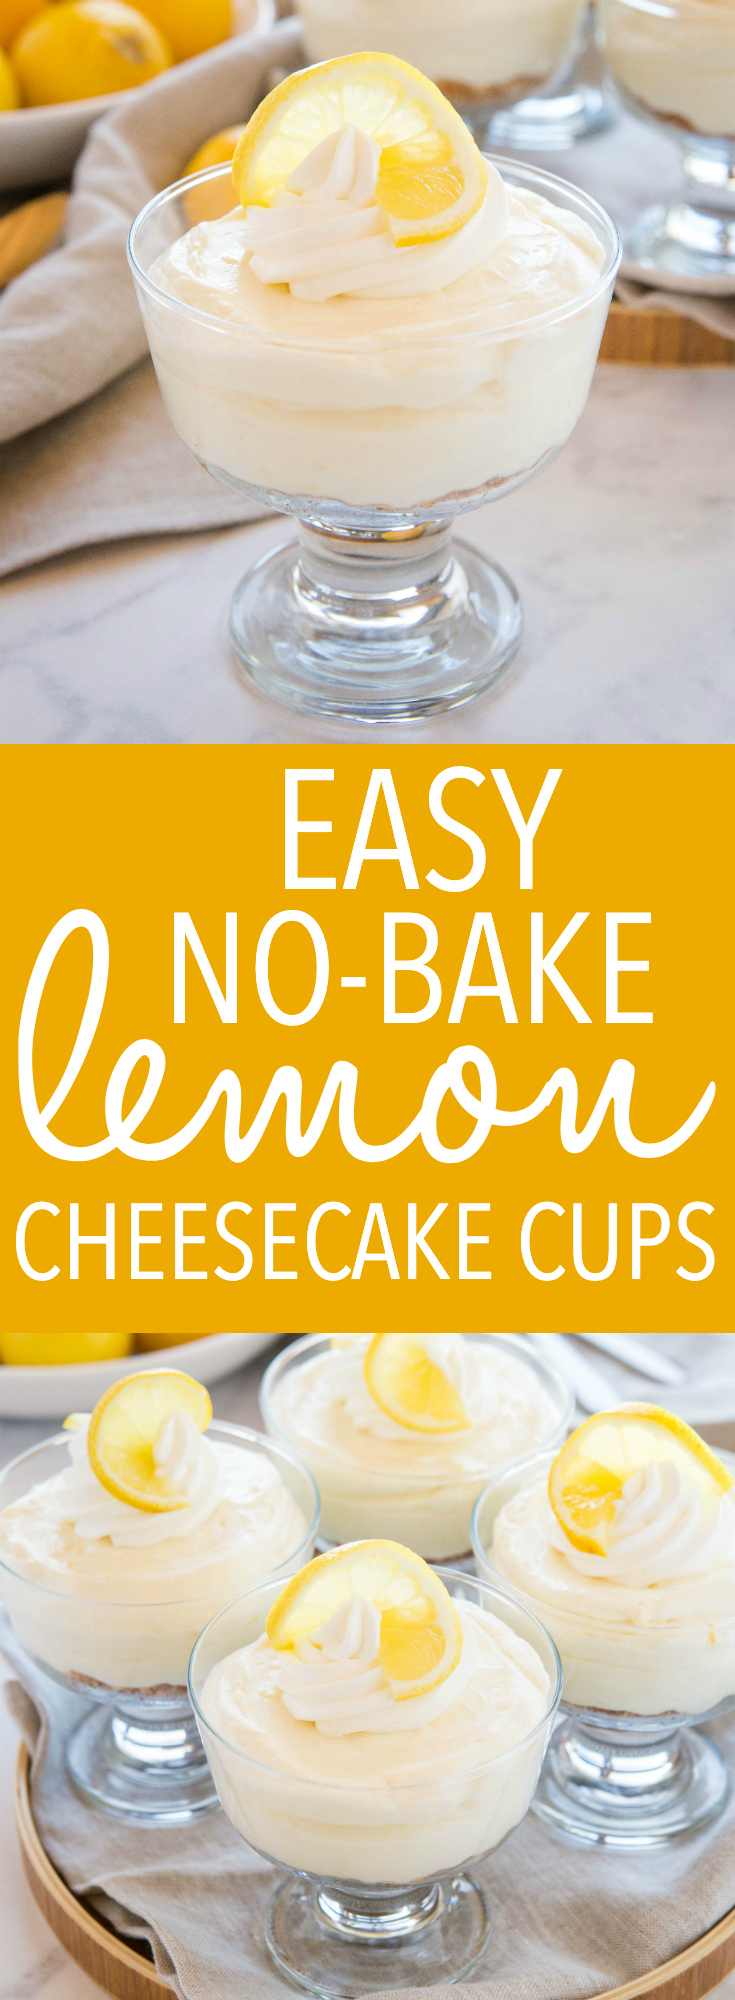 These Easy No Bake Lemon Cheesecake Cups are the perfect simple dessert for summer that's bursting with fresh citrus flavour! They're SO easy to make, no baking required! Recipe from thebusybaker.ca! #lemoncheesecake #cheesecake #lemon #citrus #nobake #dessert #summerdessert via @busybakerblog